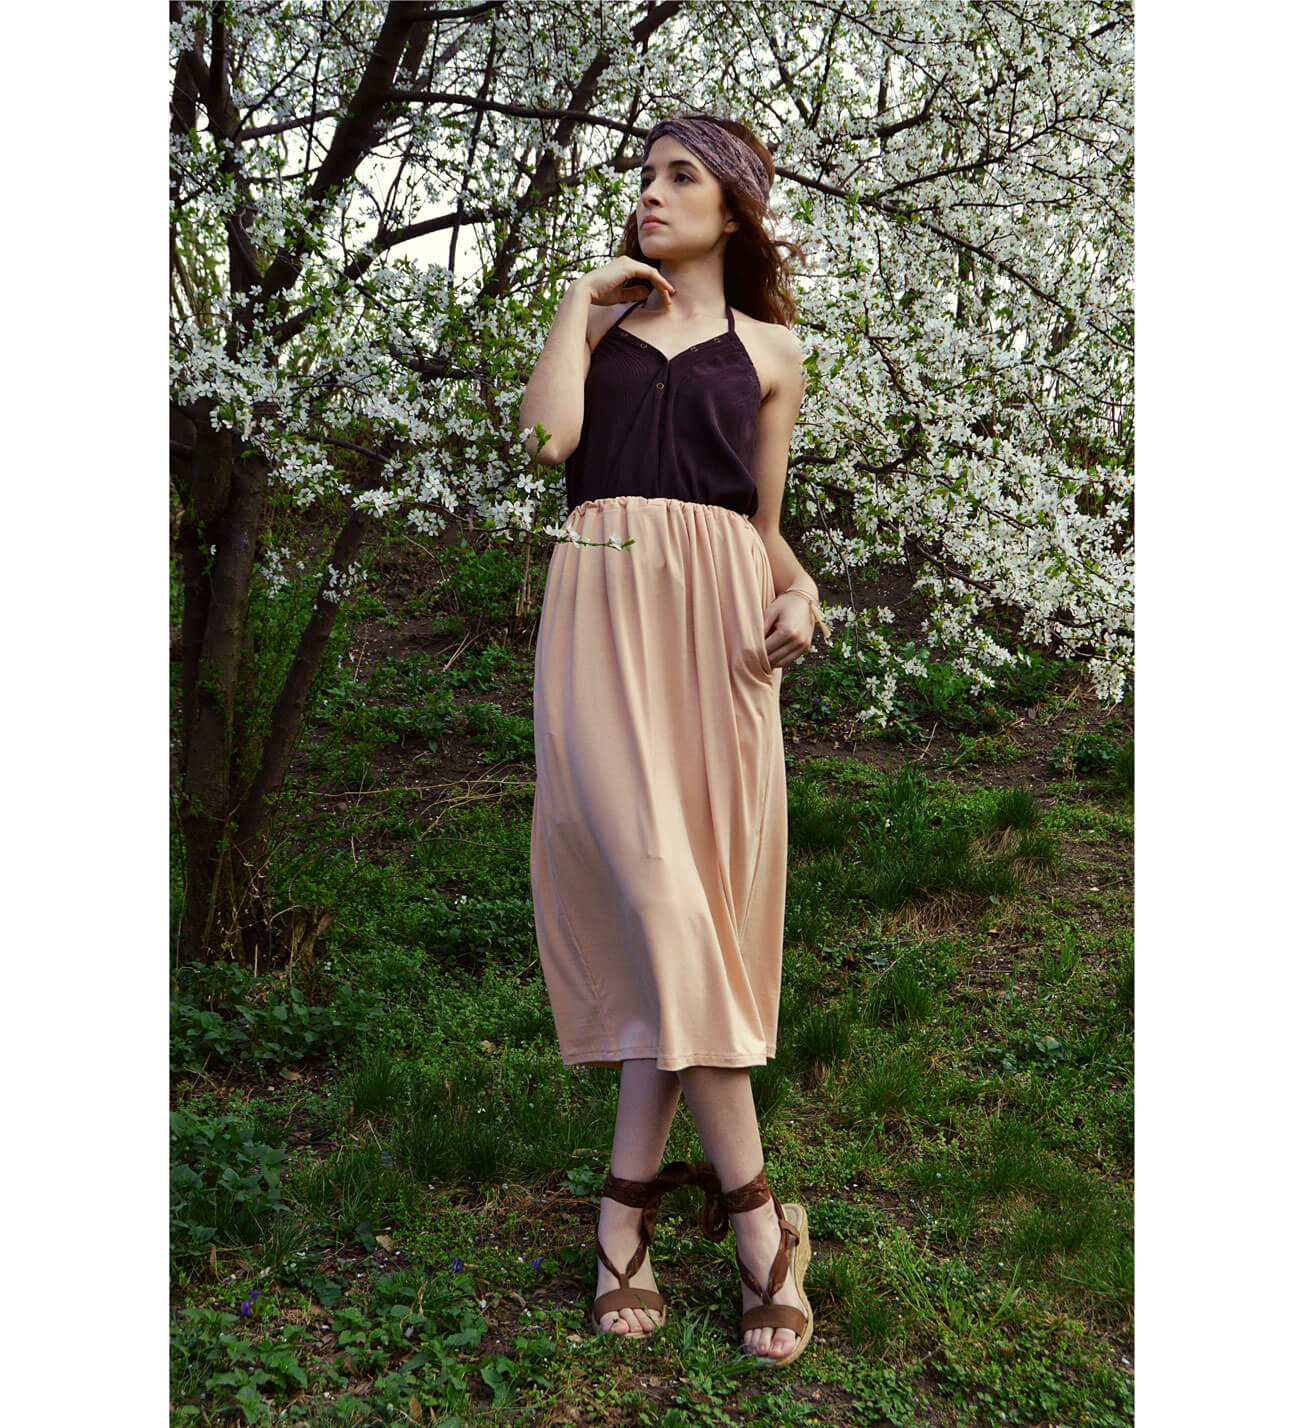 Salmon pink skirt that you can wear as dress